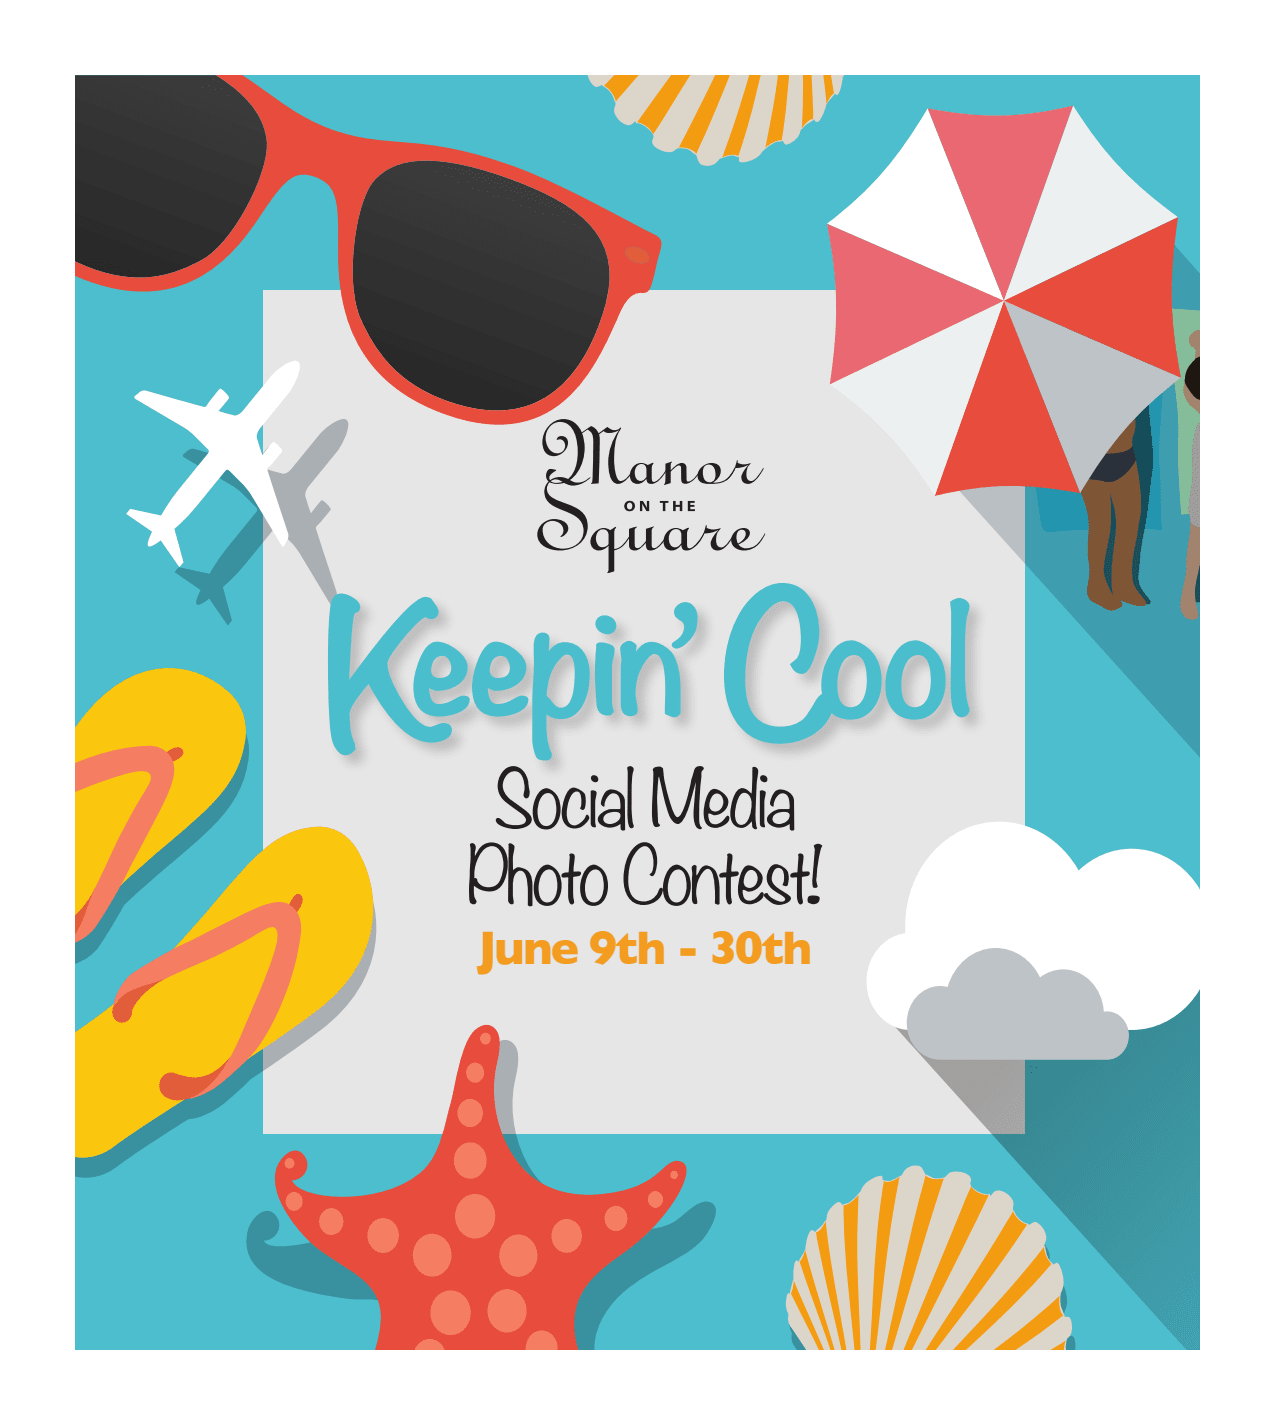 Keep Cool Photo Contest - activities at Benton House of Staley Hills in Kansas City, MO